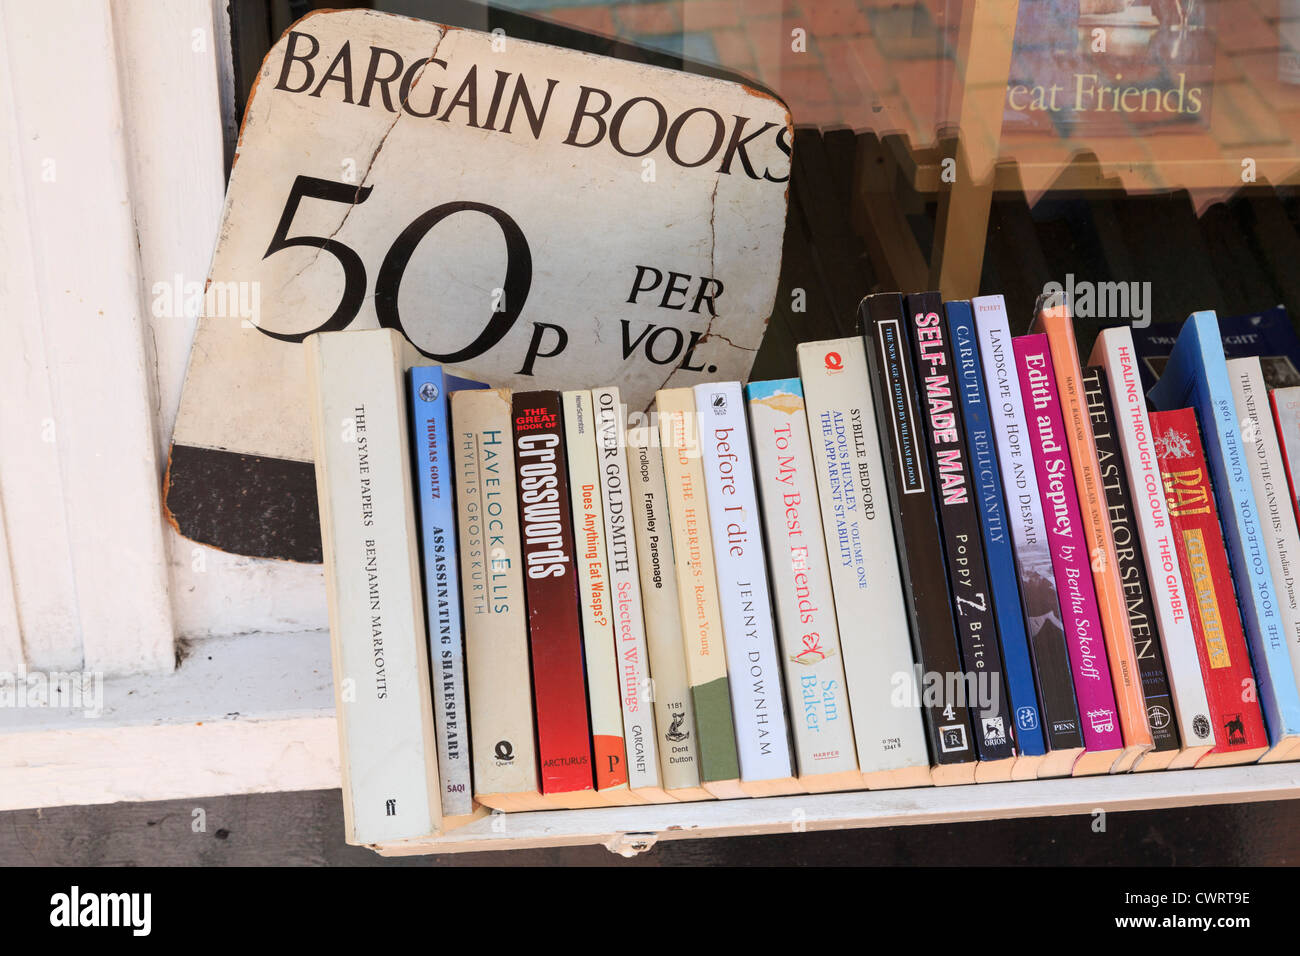 Sign for old bargain paperback books on sale on a shelf for 50p per volume outside a bookshop in England UK Britain - Stock Image